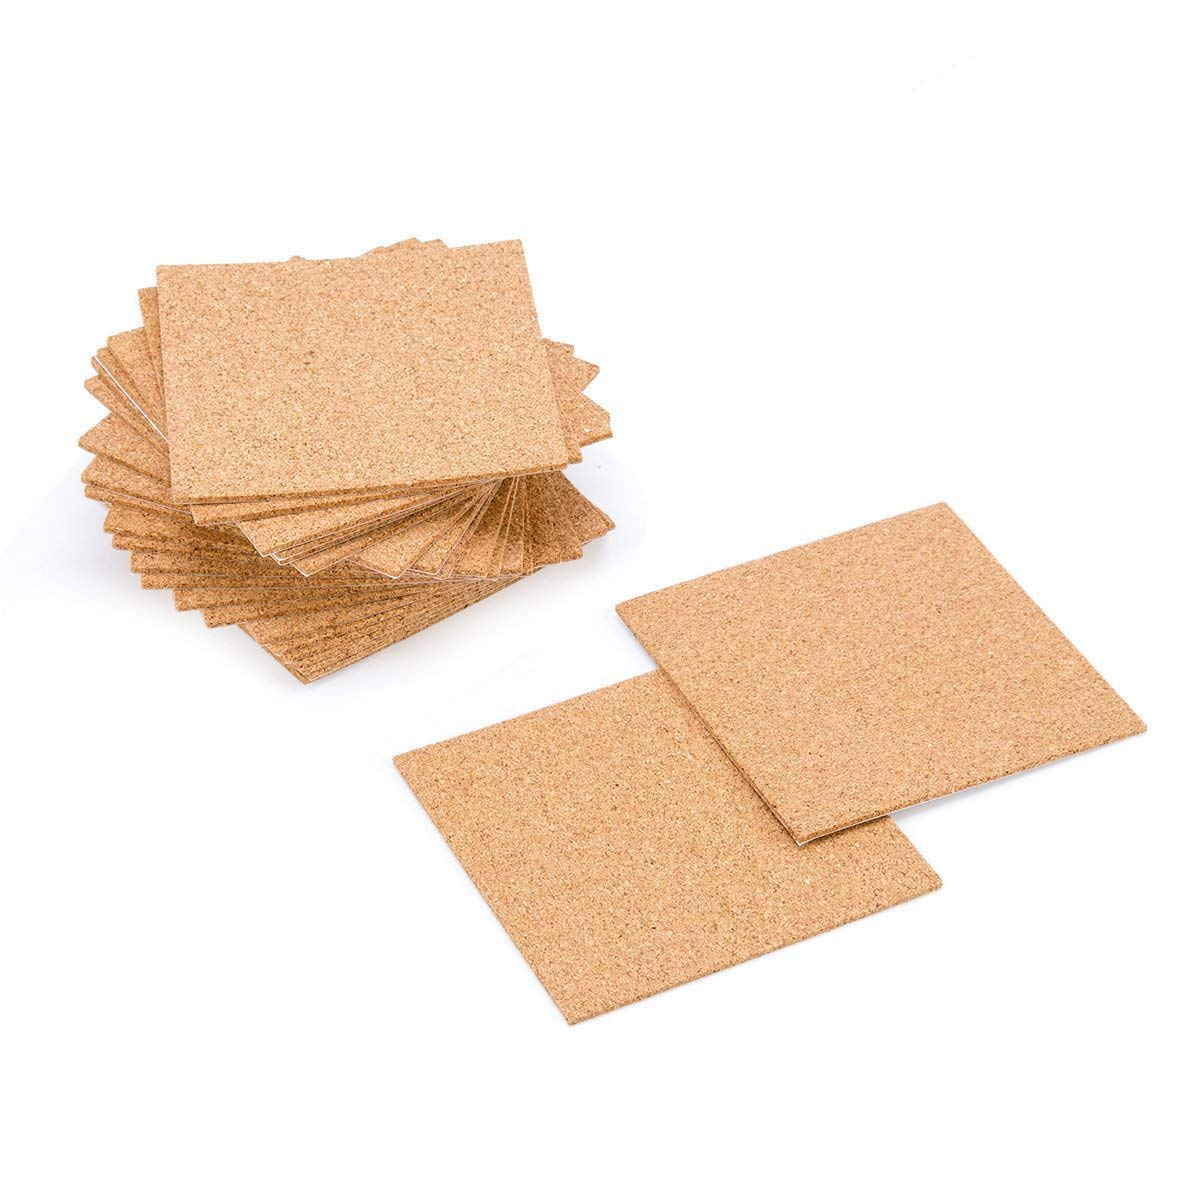 60 Pack Self-Adhesive Cork Squares - 4''x 4'' Cork Backing Sheets Mini Wall Cork Tiles for Coasters and DIY Crafts